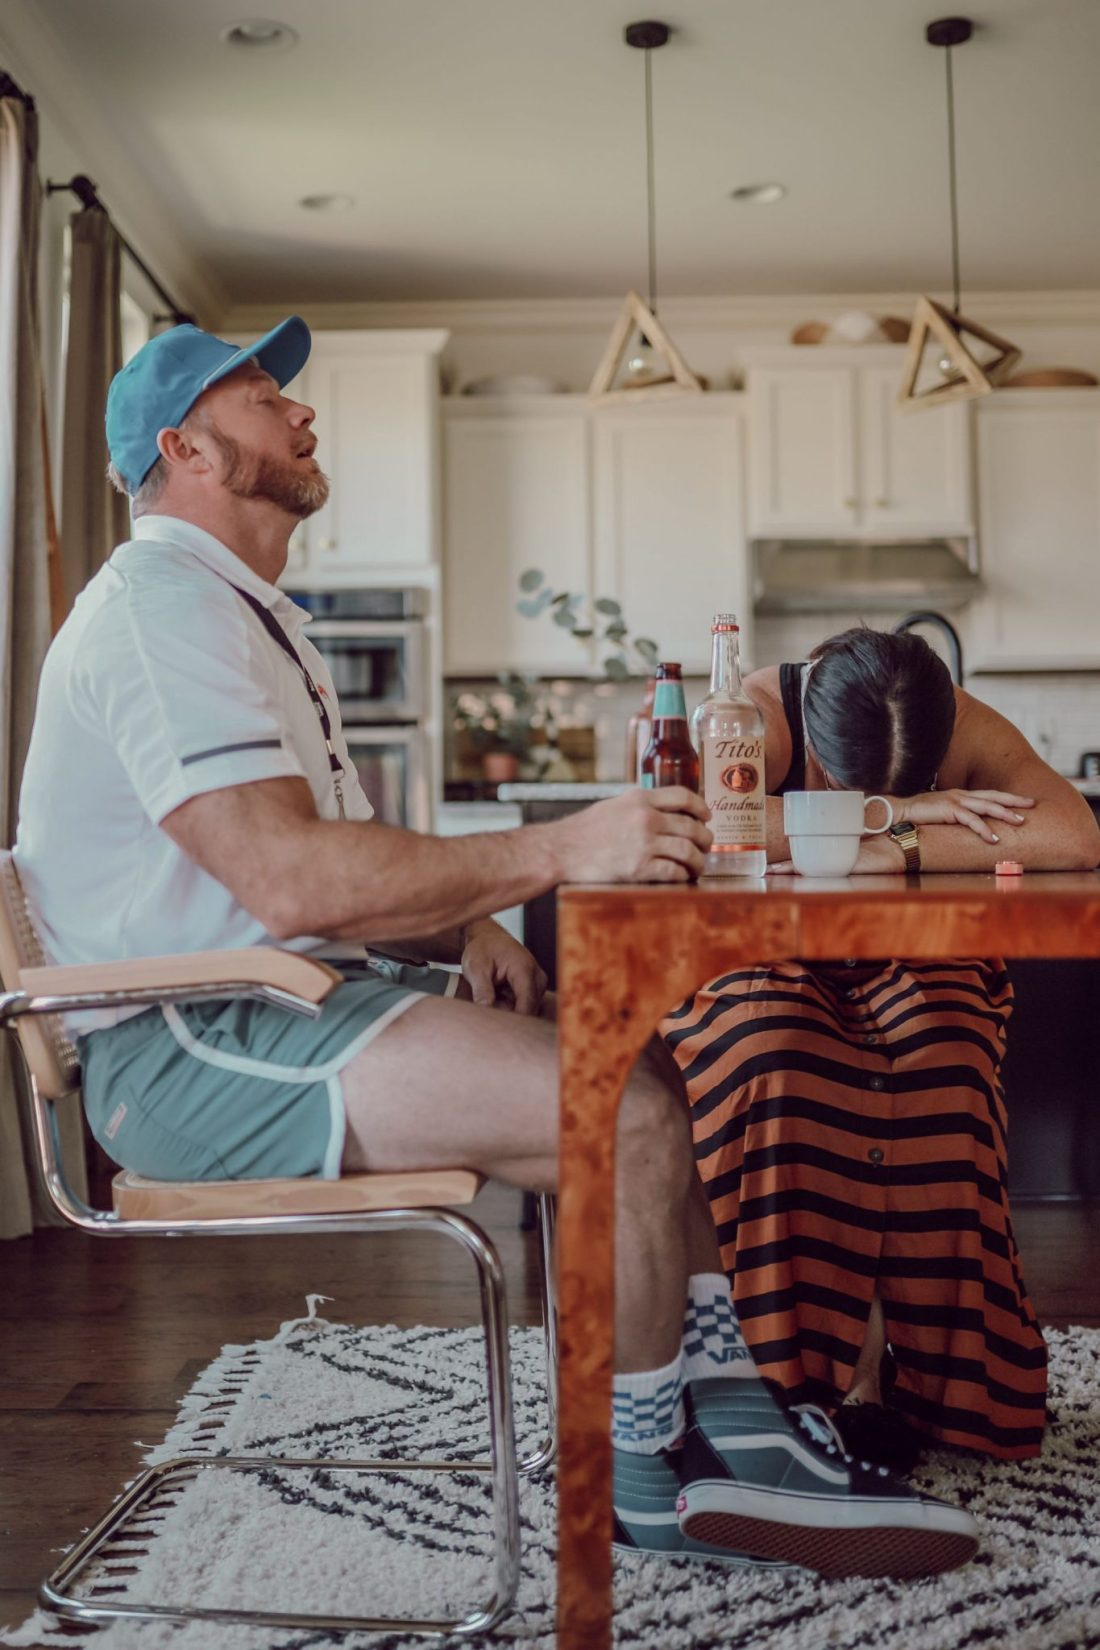 Homeschooling Journey by popular Nashville lifestyle blog, Modern Day Moguls: image of a man dressed up as a gym teacher and a woman dressed up as a teacher sitting at a table and drinking some alcoholic beverages.